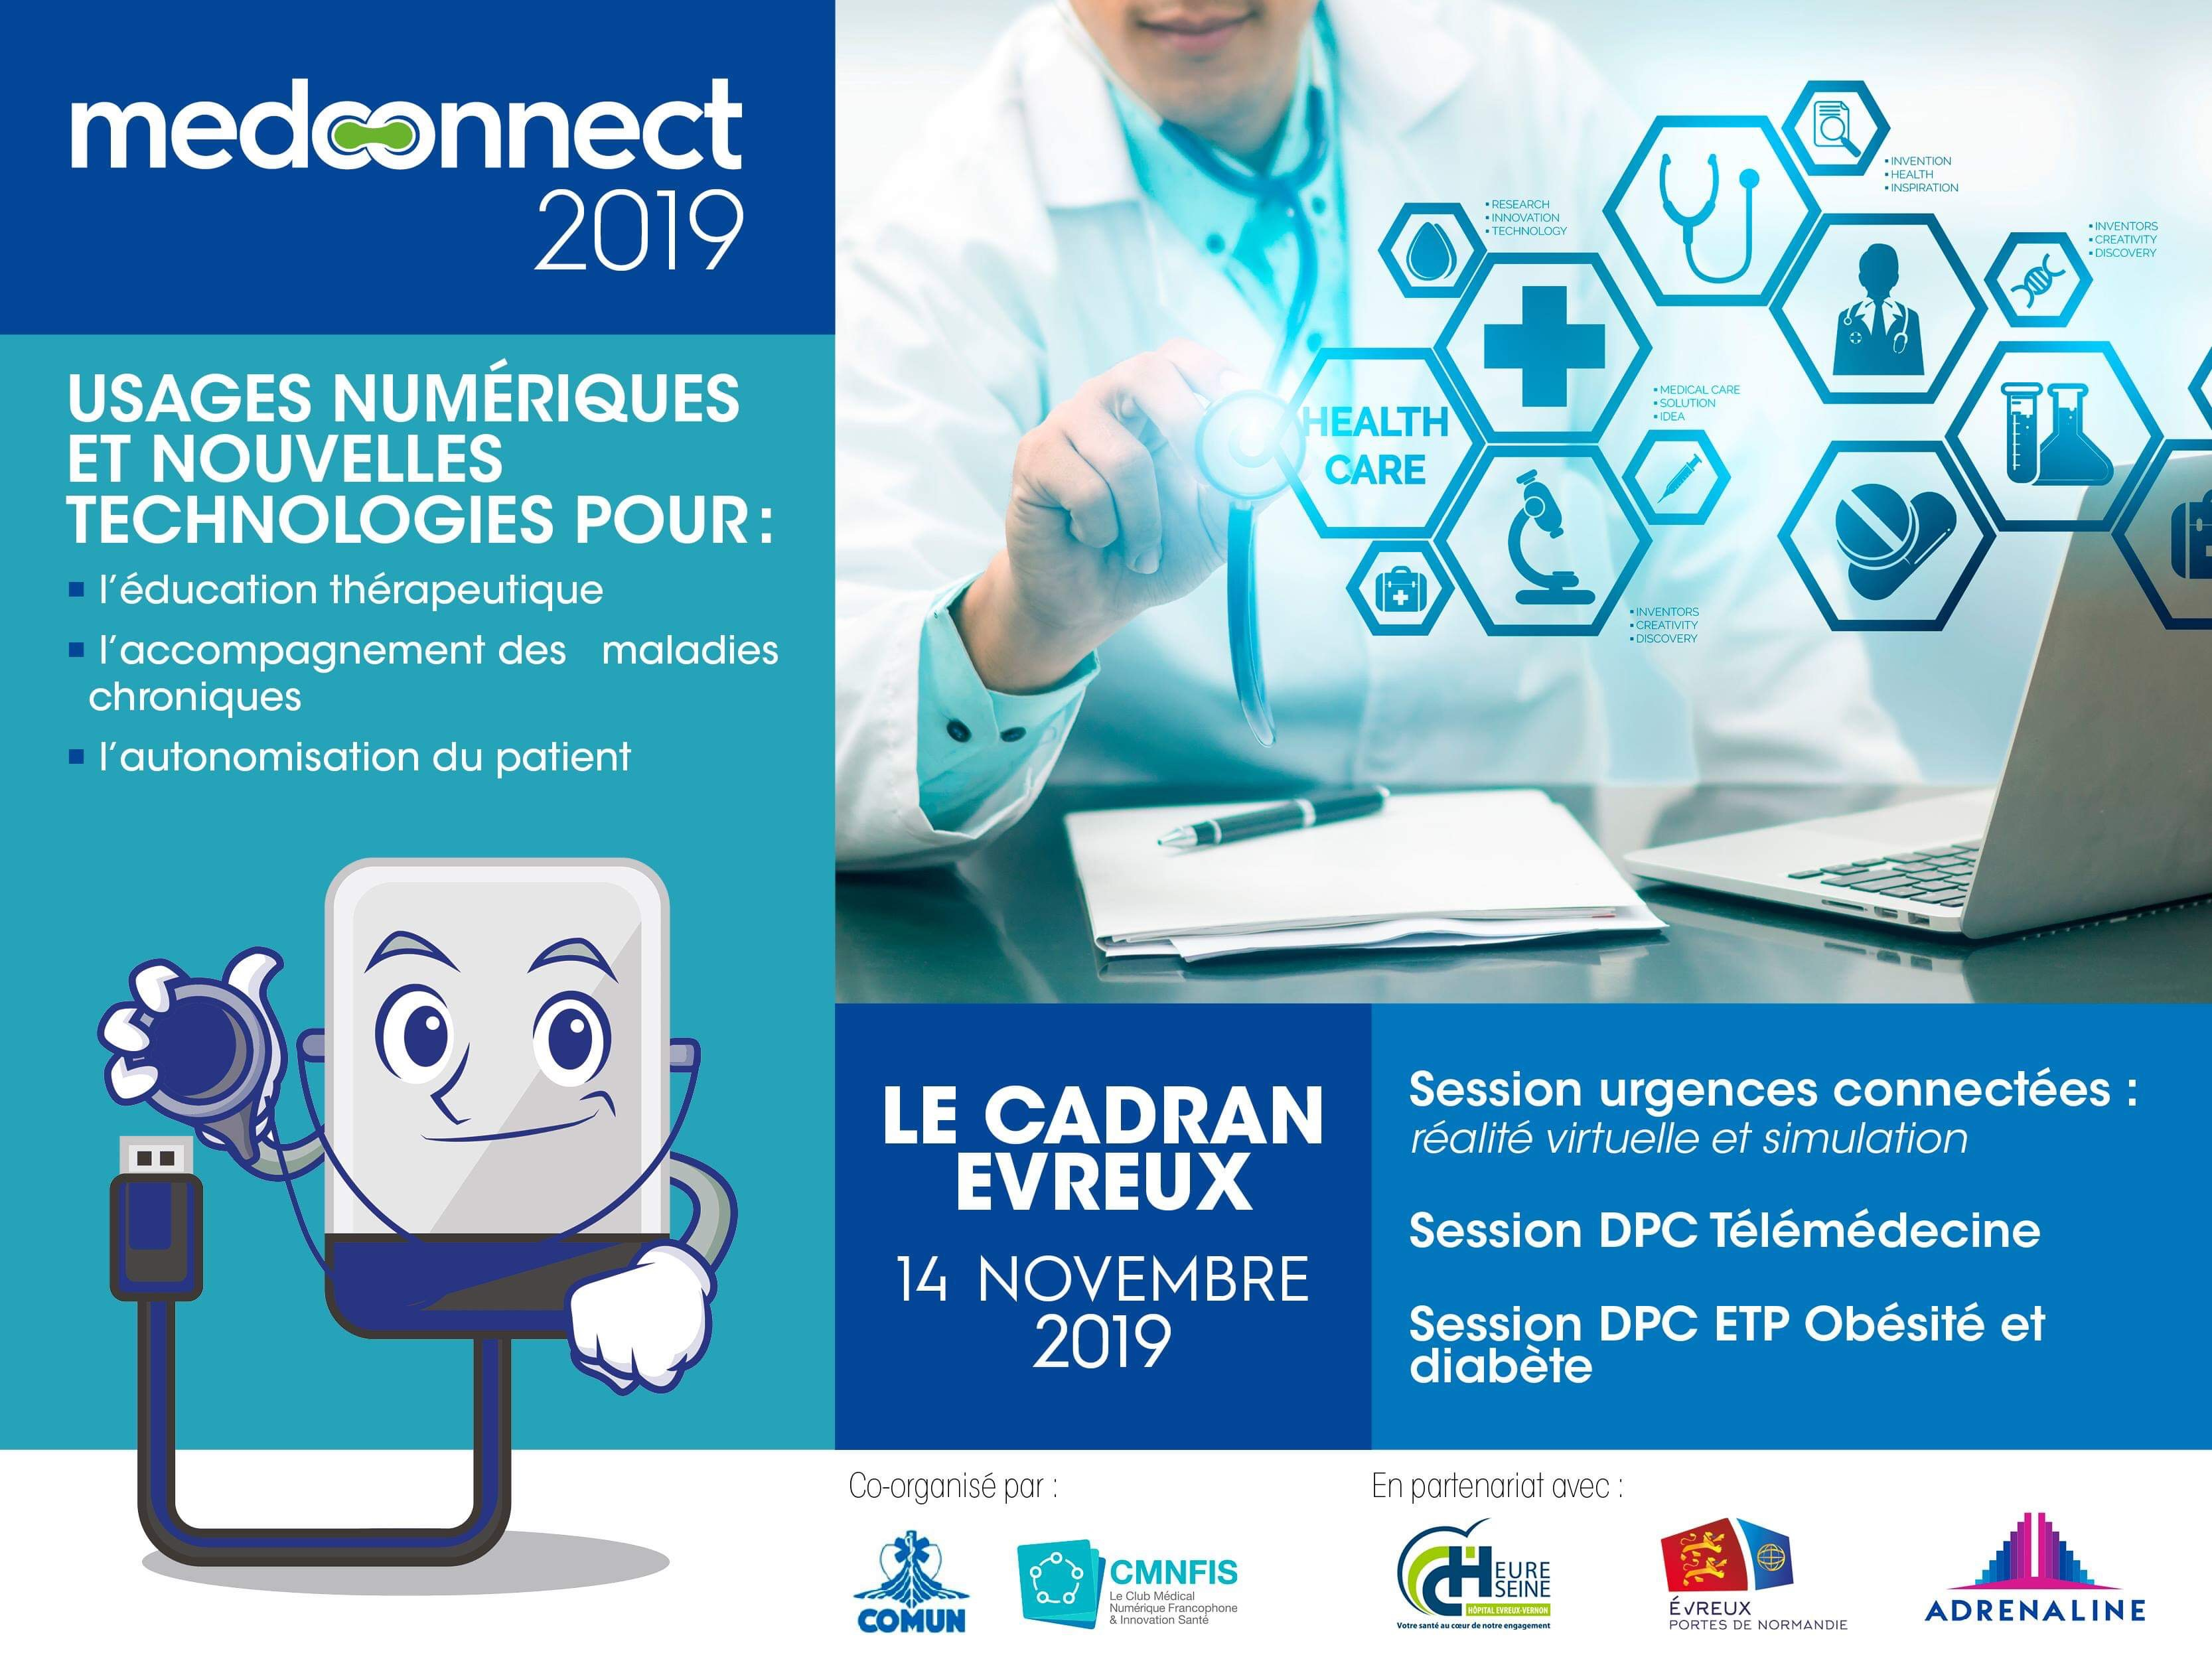 MEDCONNECT 2019